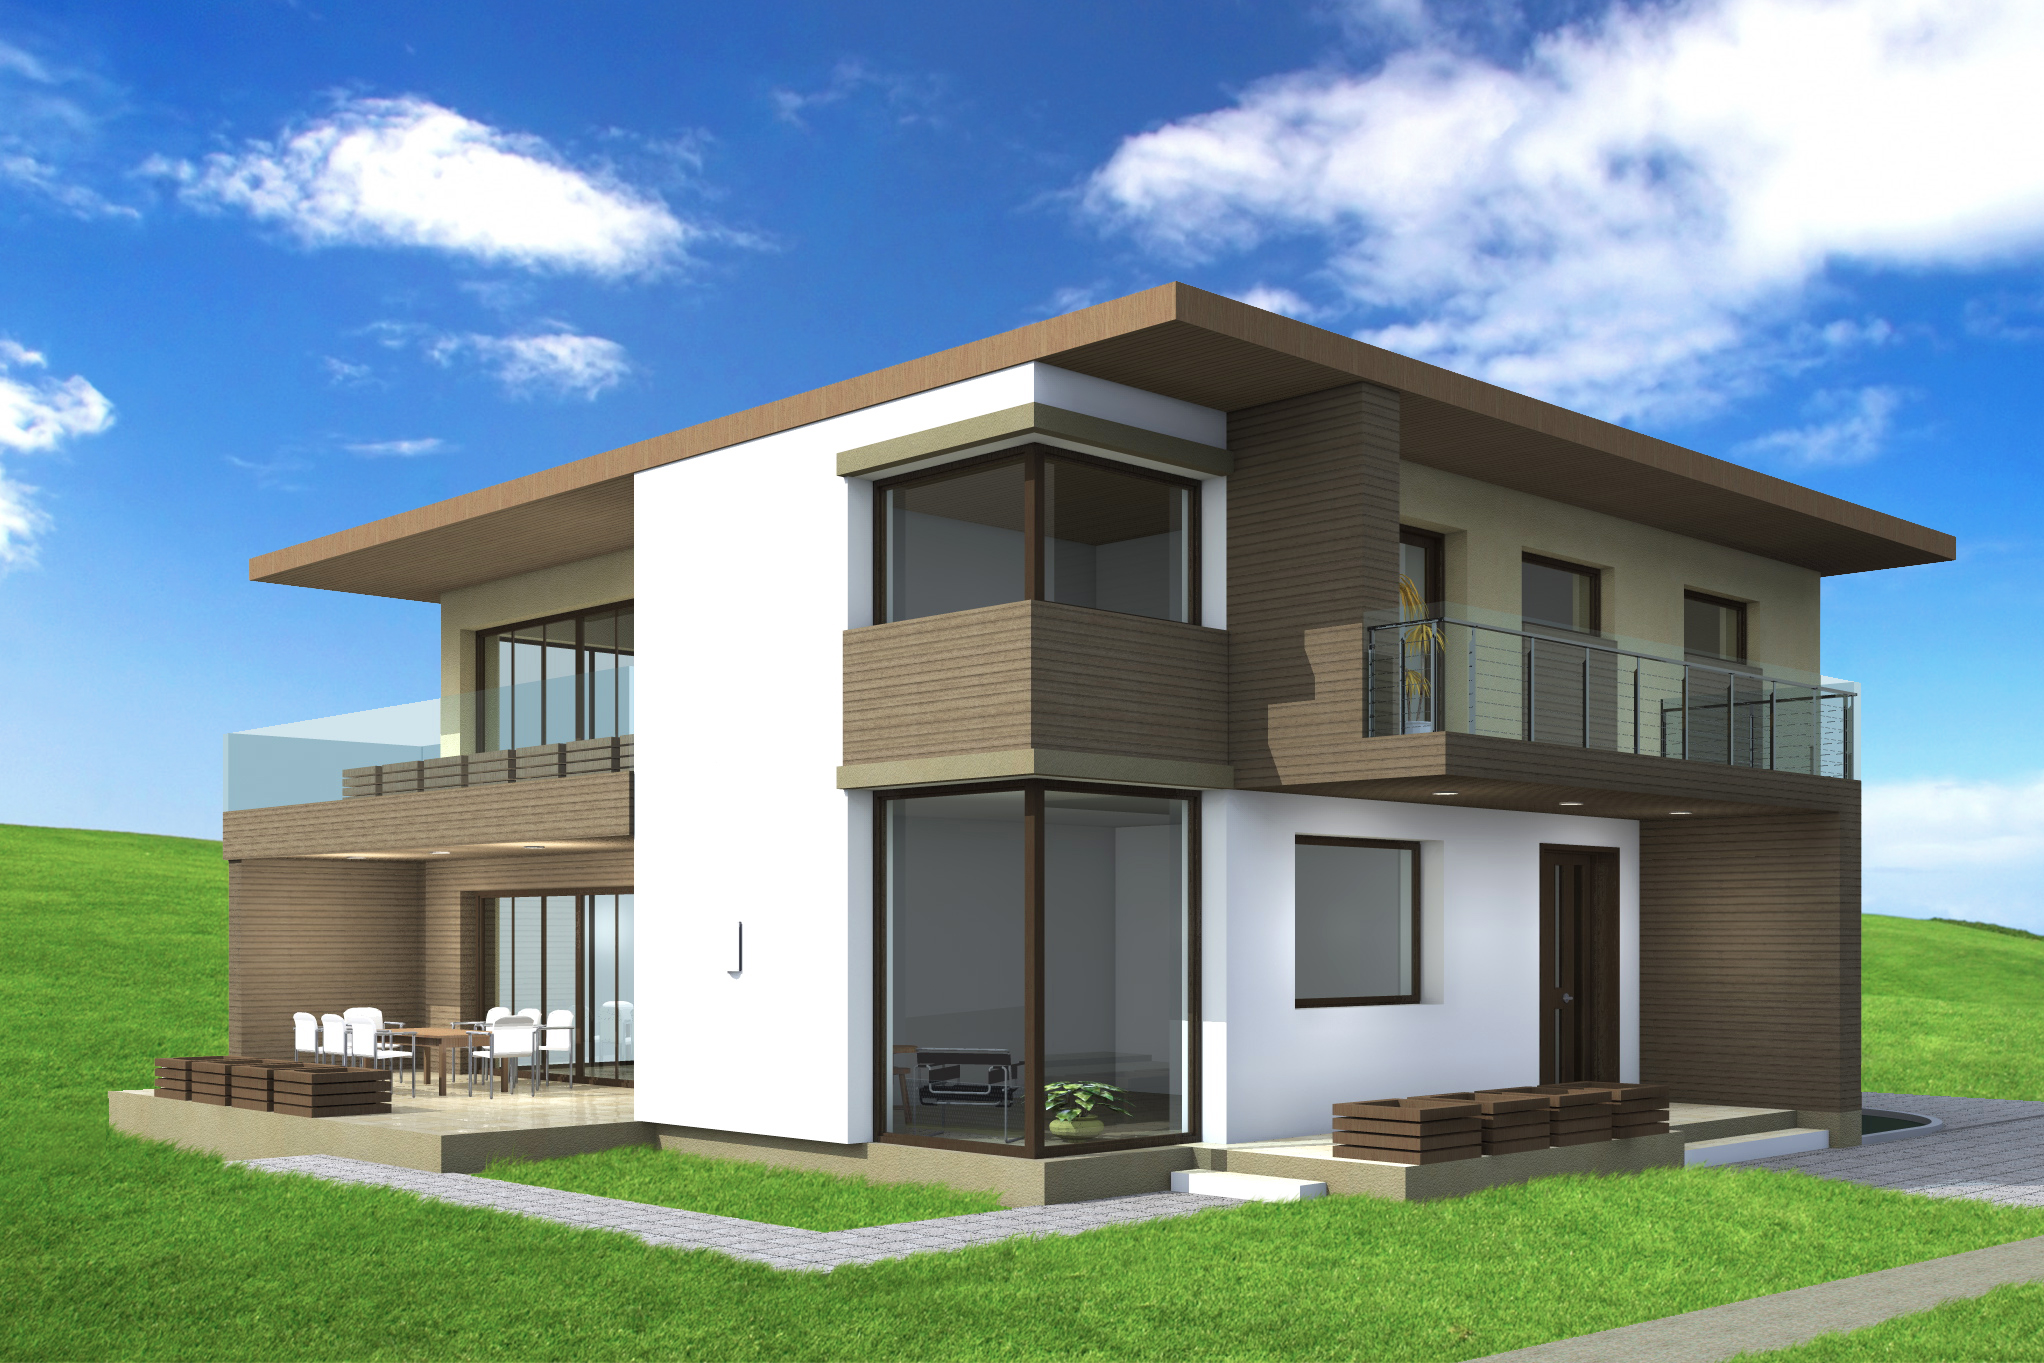 Plan maison contemporaine cj 5 190m2 for Maison contemporaine plan